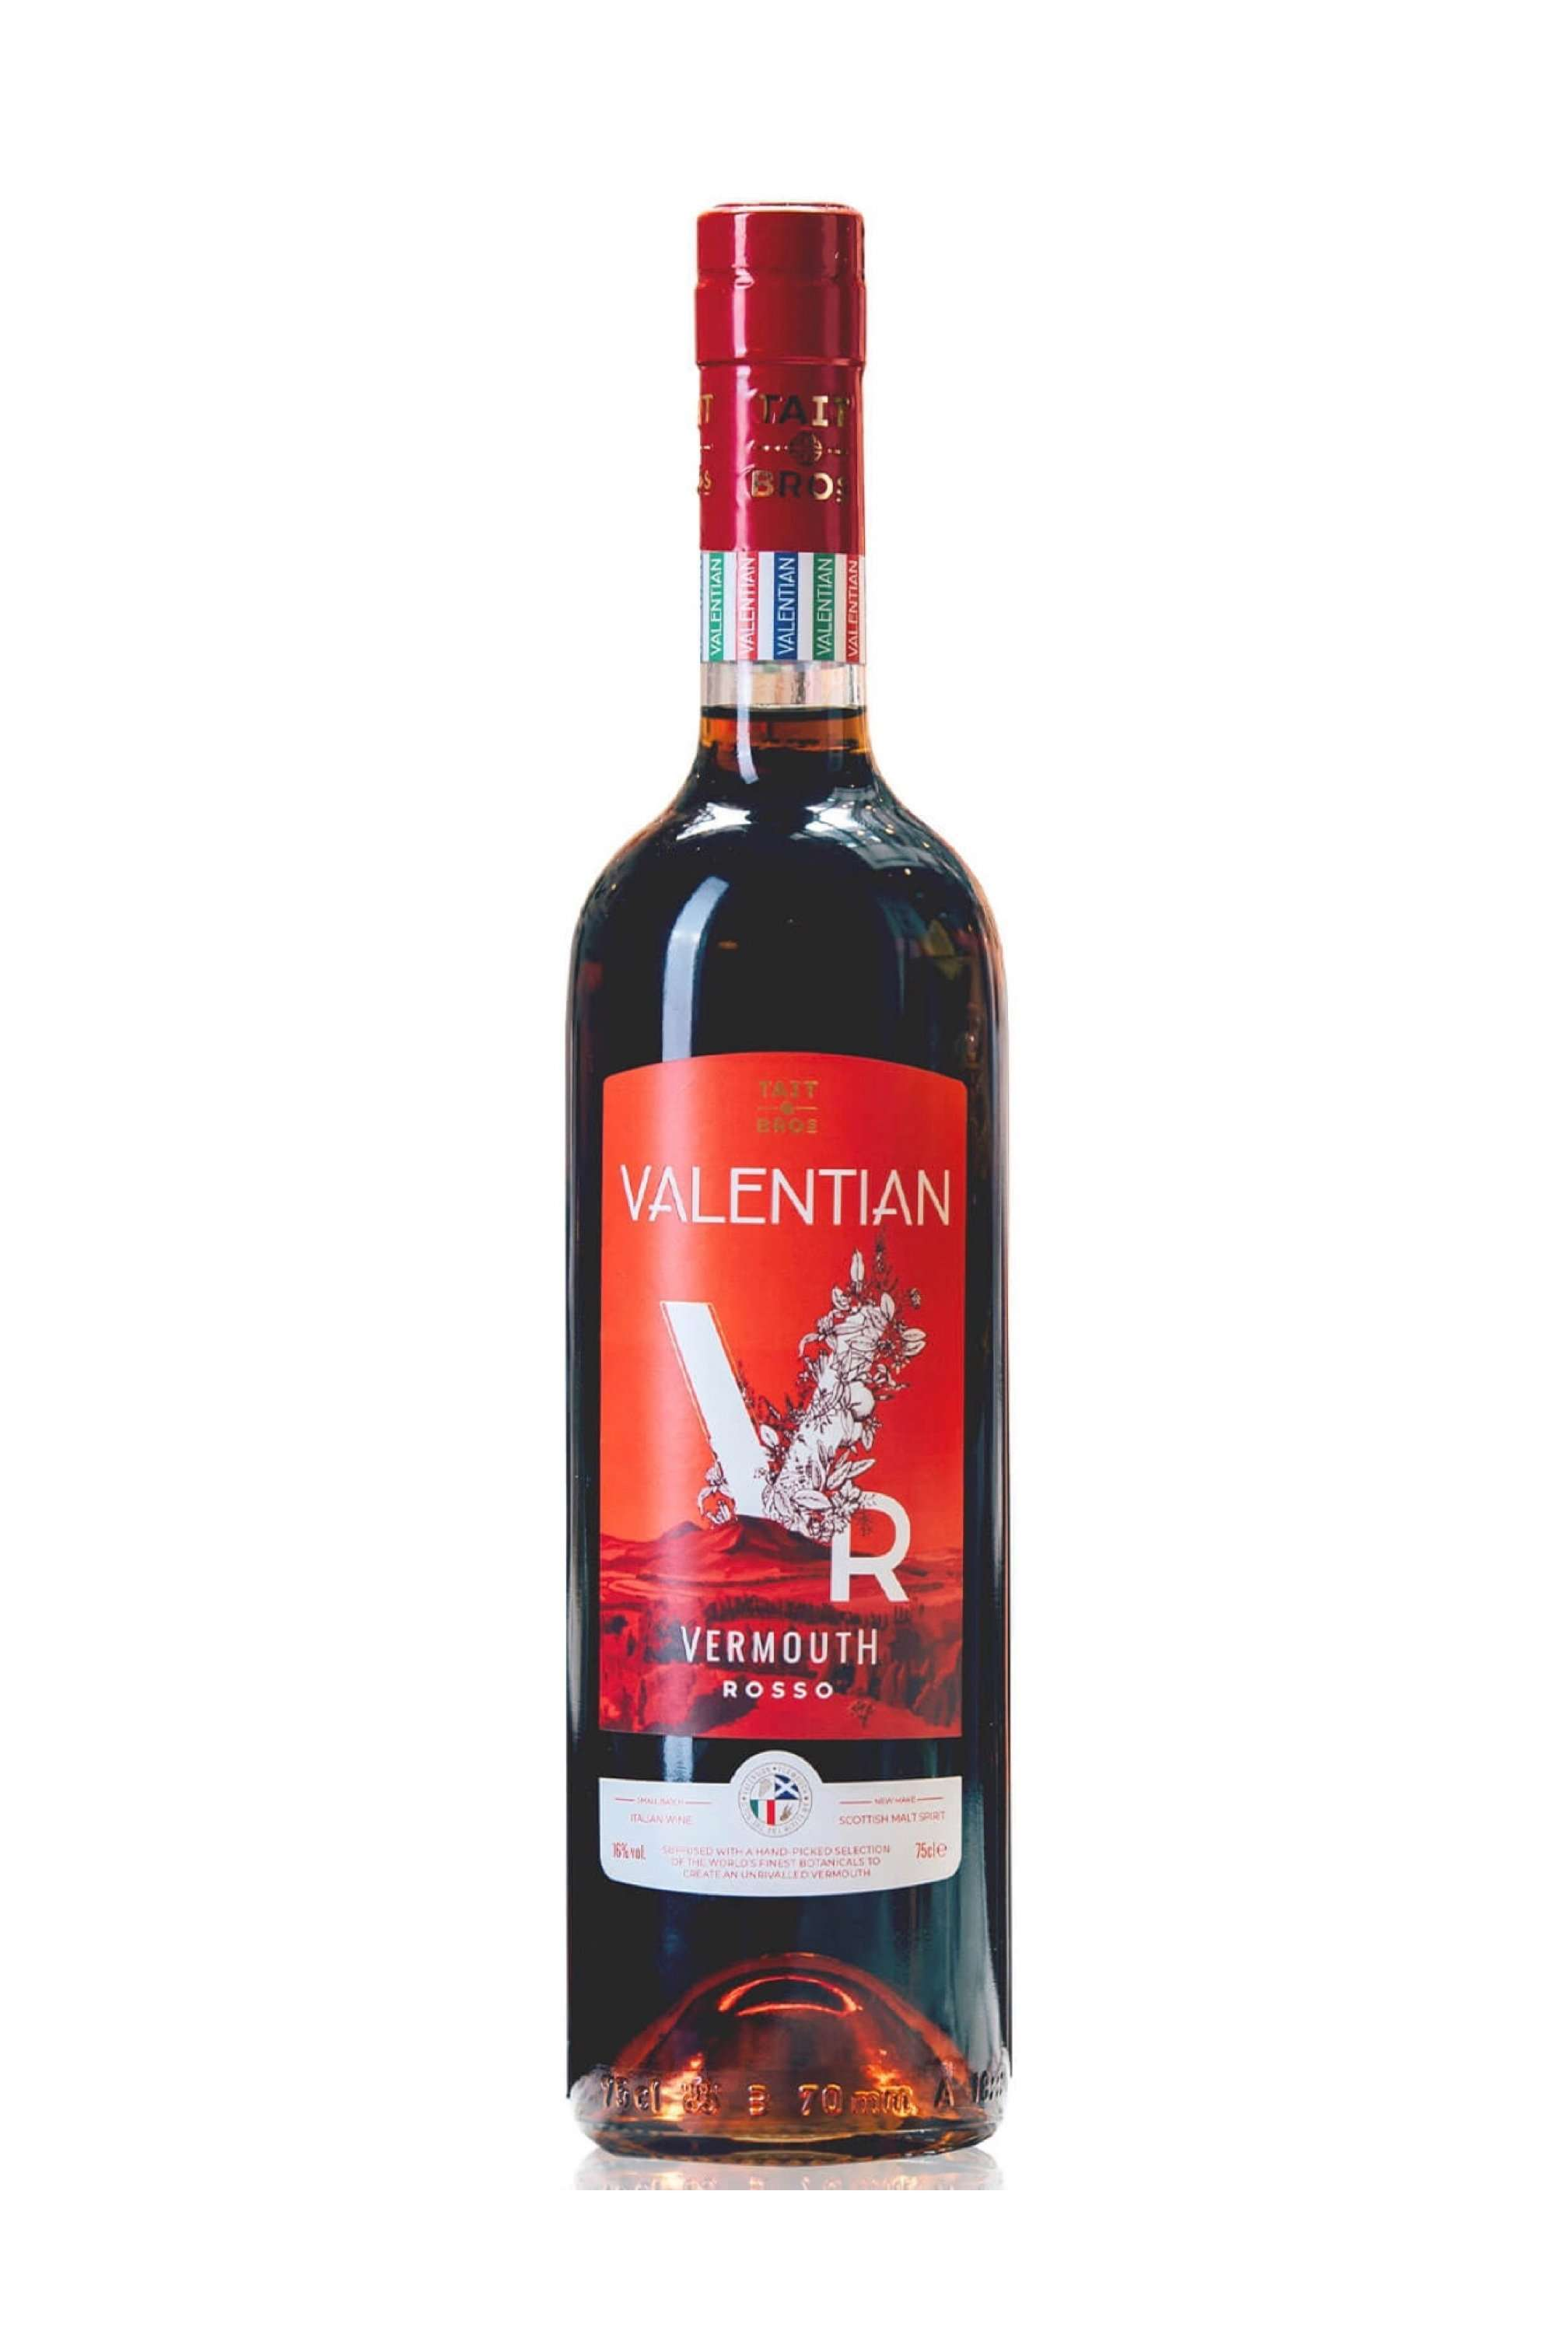 Valentian Vermouth Rosso